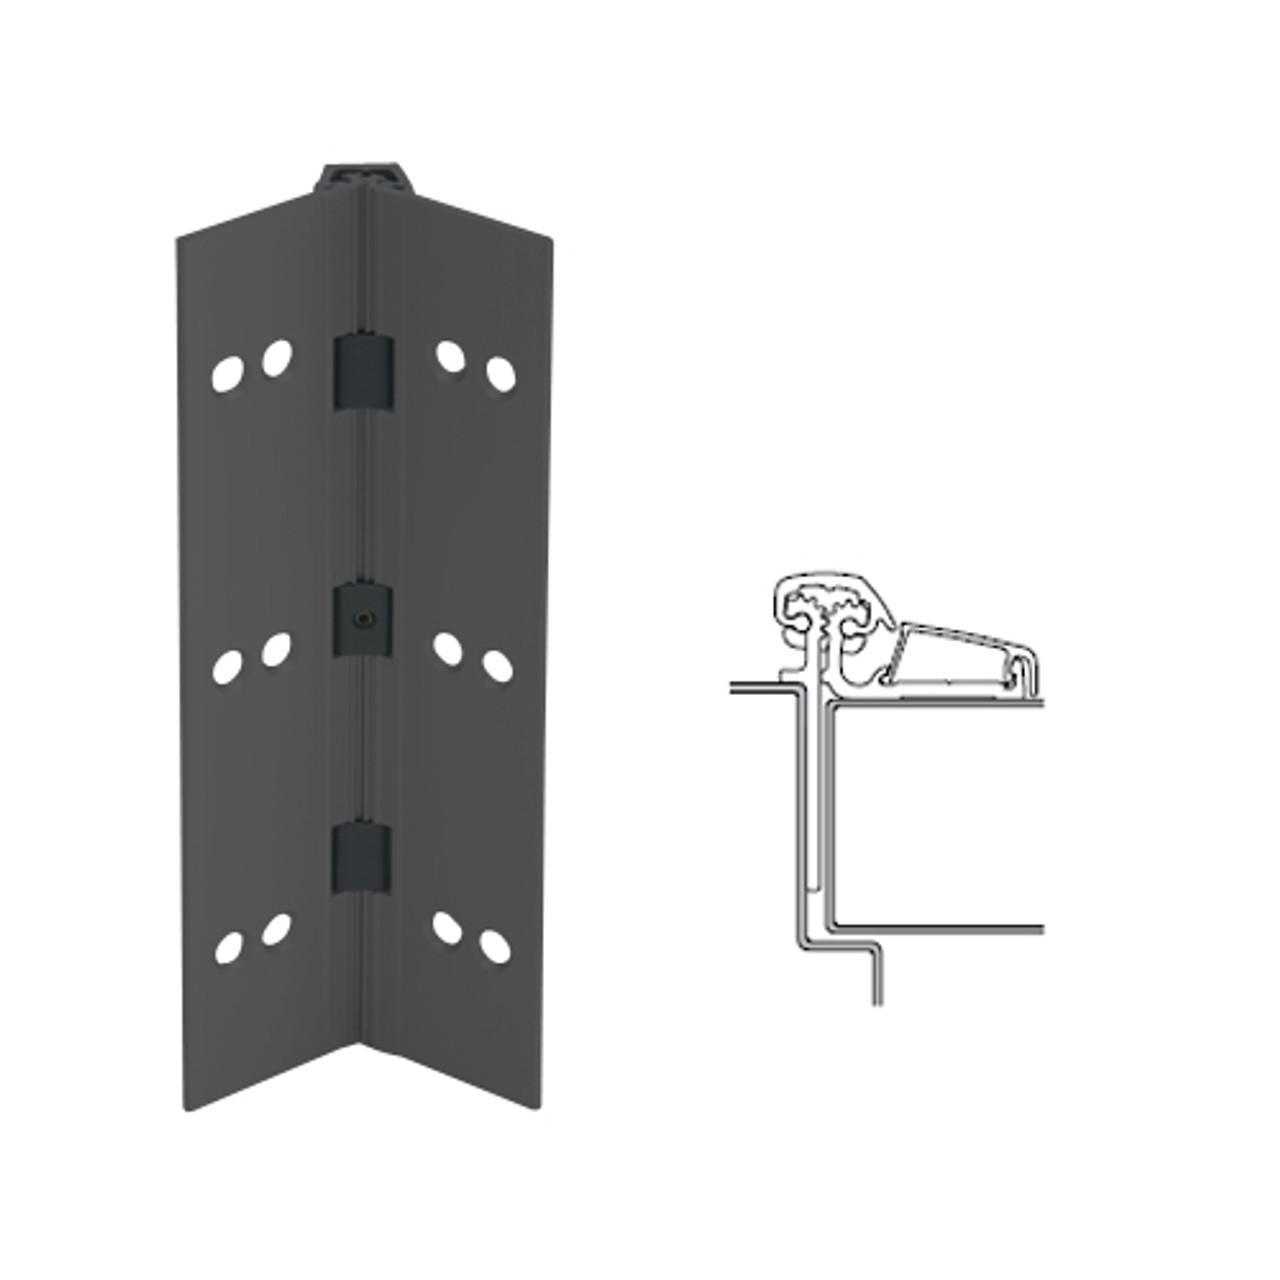 053XY-315AN-95-SECWDHM IVES Adjustable Half Surface Continuous Geared Hinges with Security Screws - Hex Pin Drive in Anodized Black